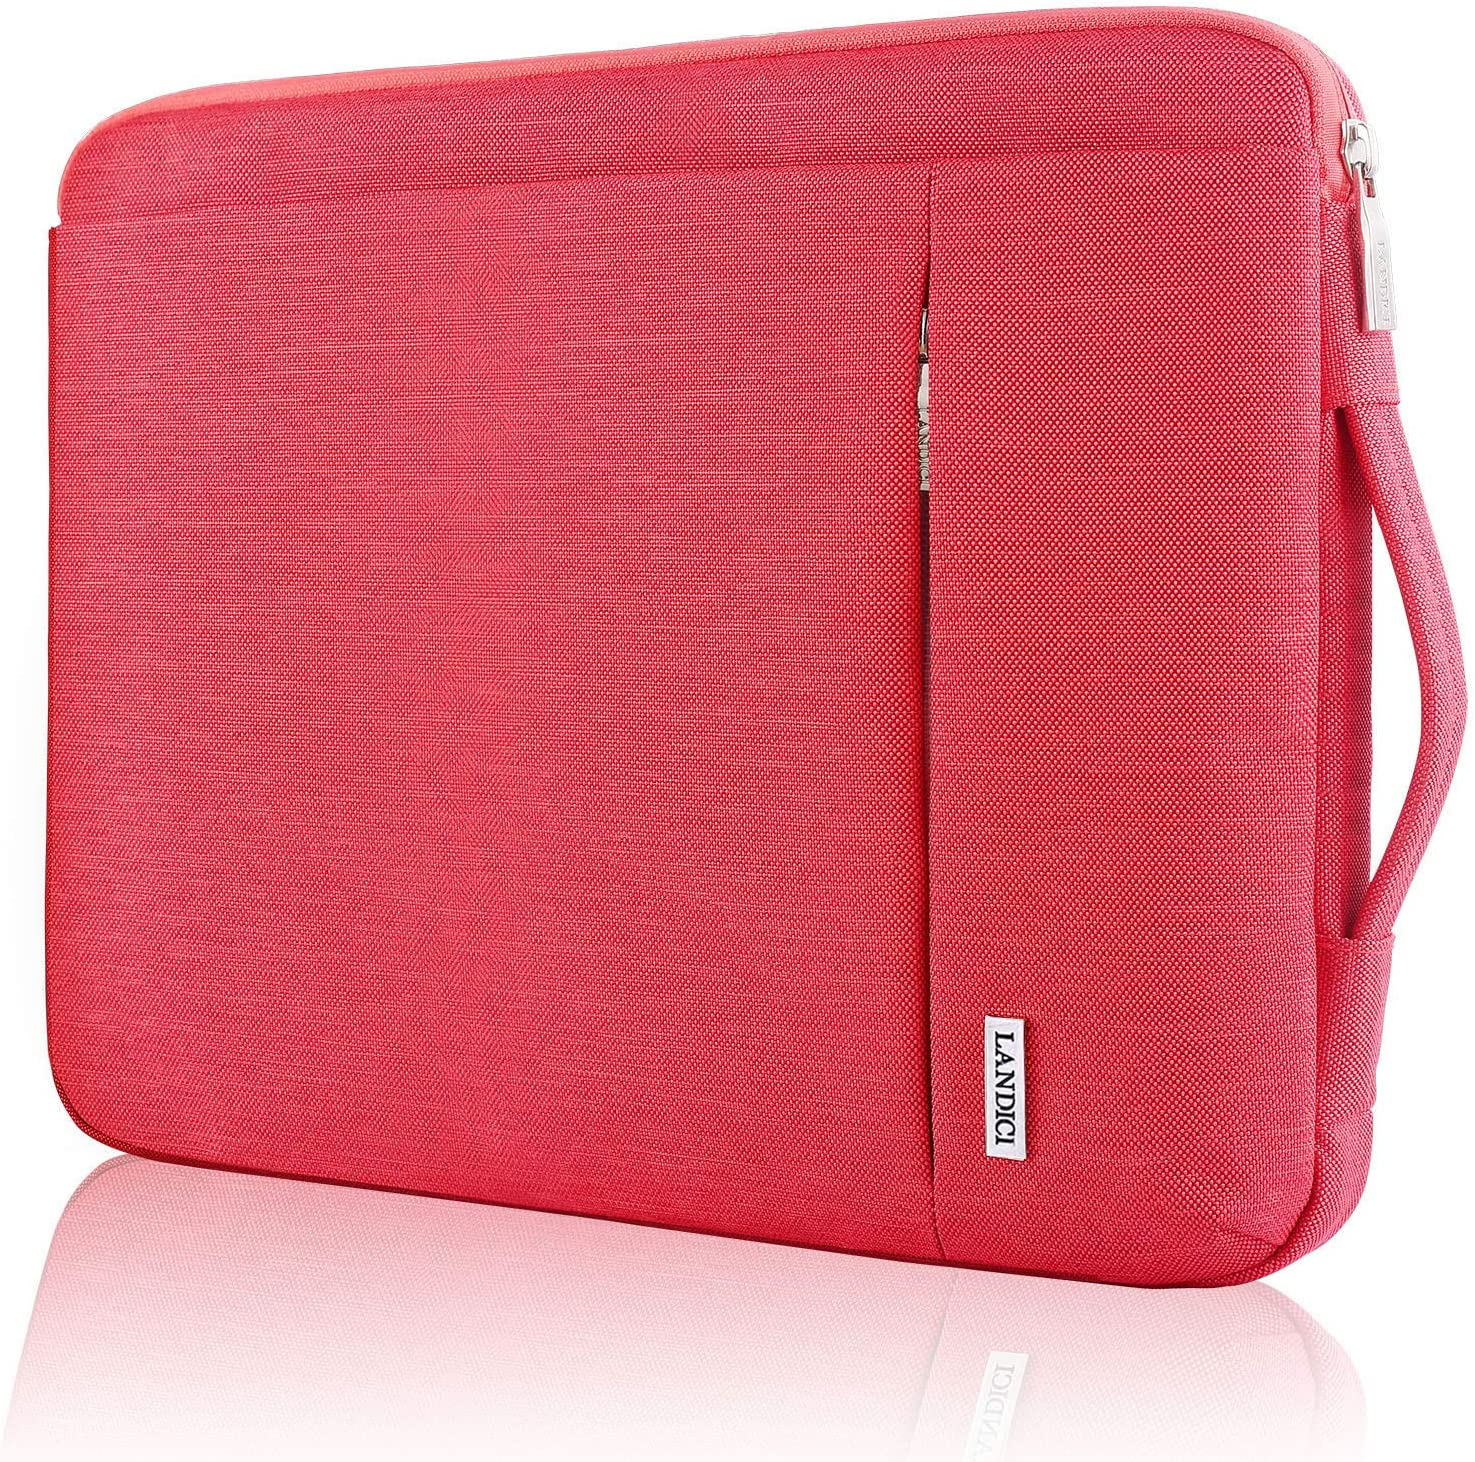 "Landici 360 Protective Laptop Case Sleeve 14-15.6 Inch,Waterproof Computer Bag Cover Compatible for 16"" New MacBook Pro,15"" Surface Laptop 3,HP Pavilion,ThinkPad E590 Chromebook -Red"